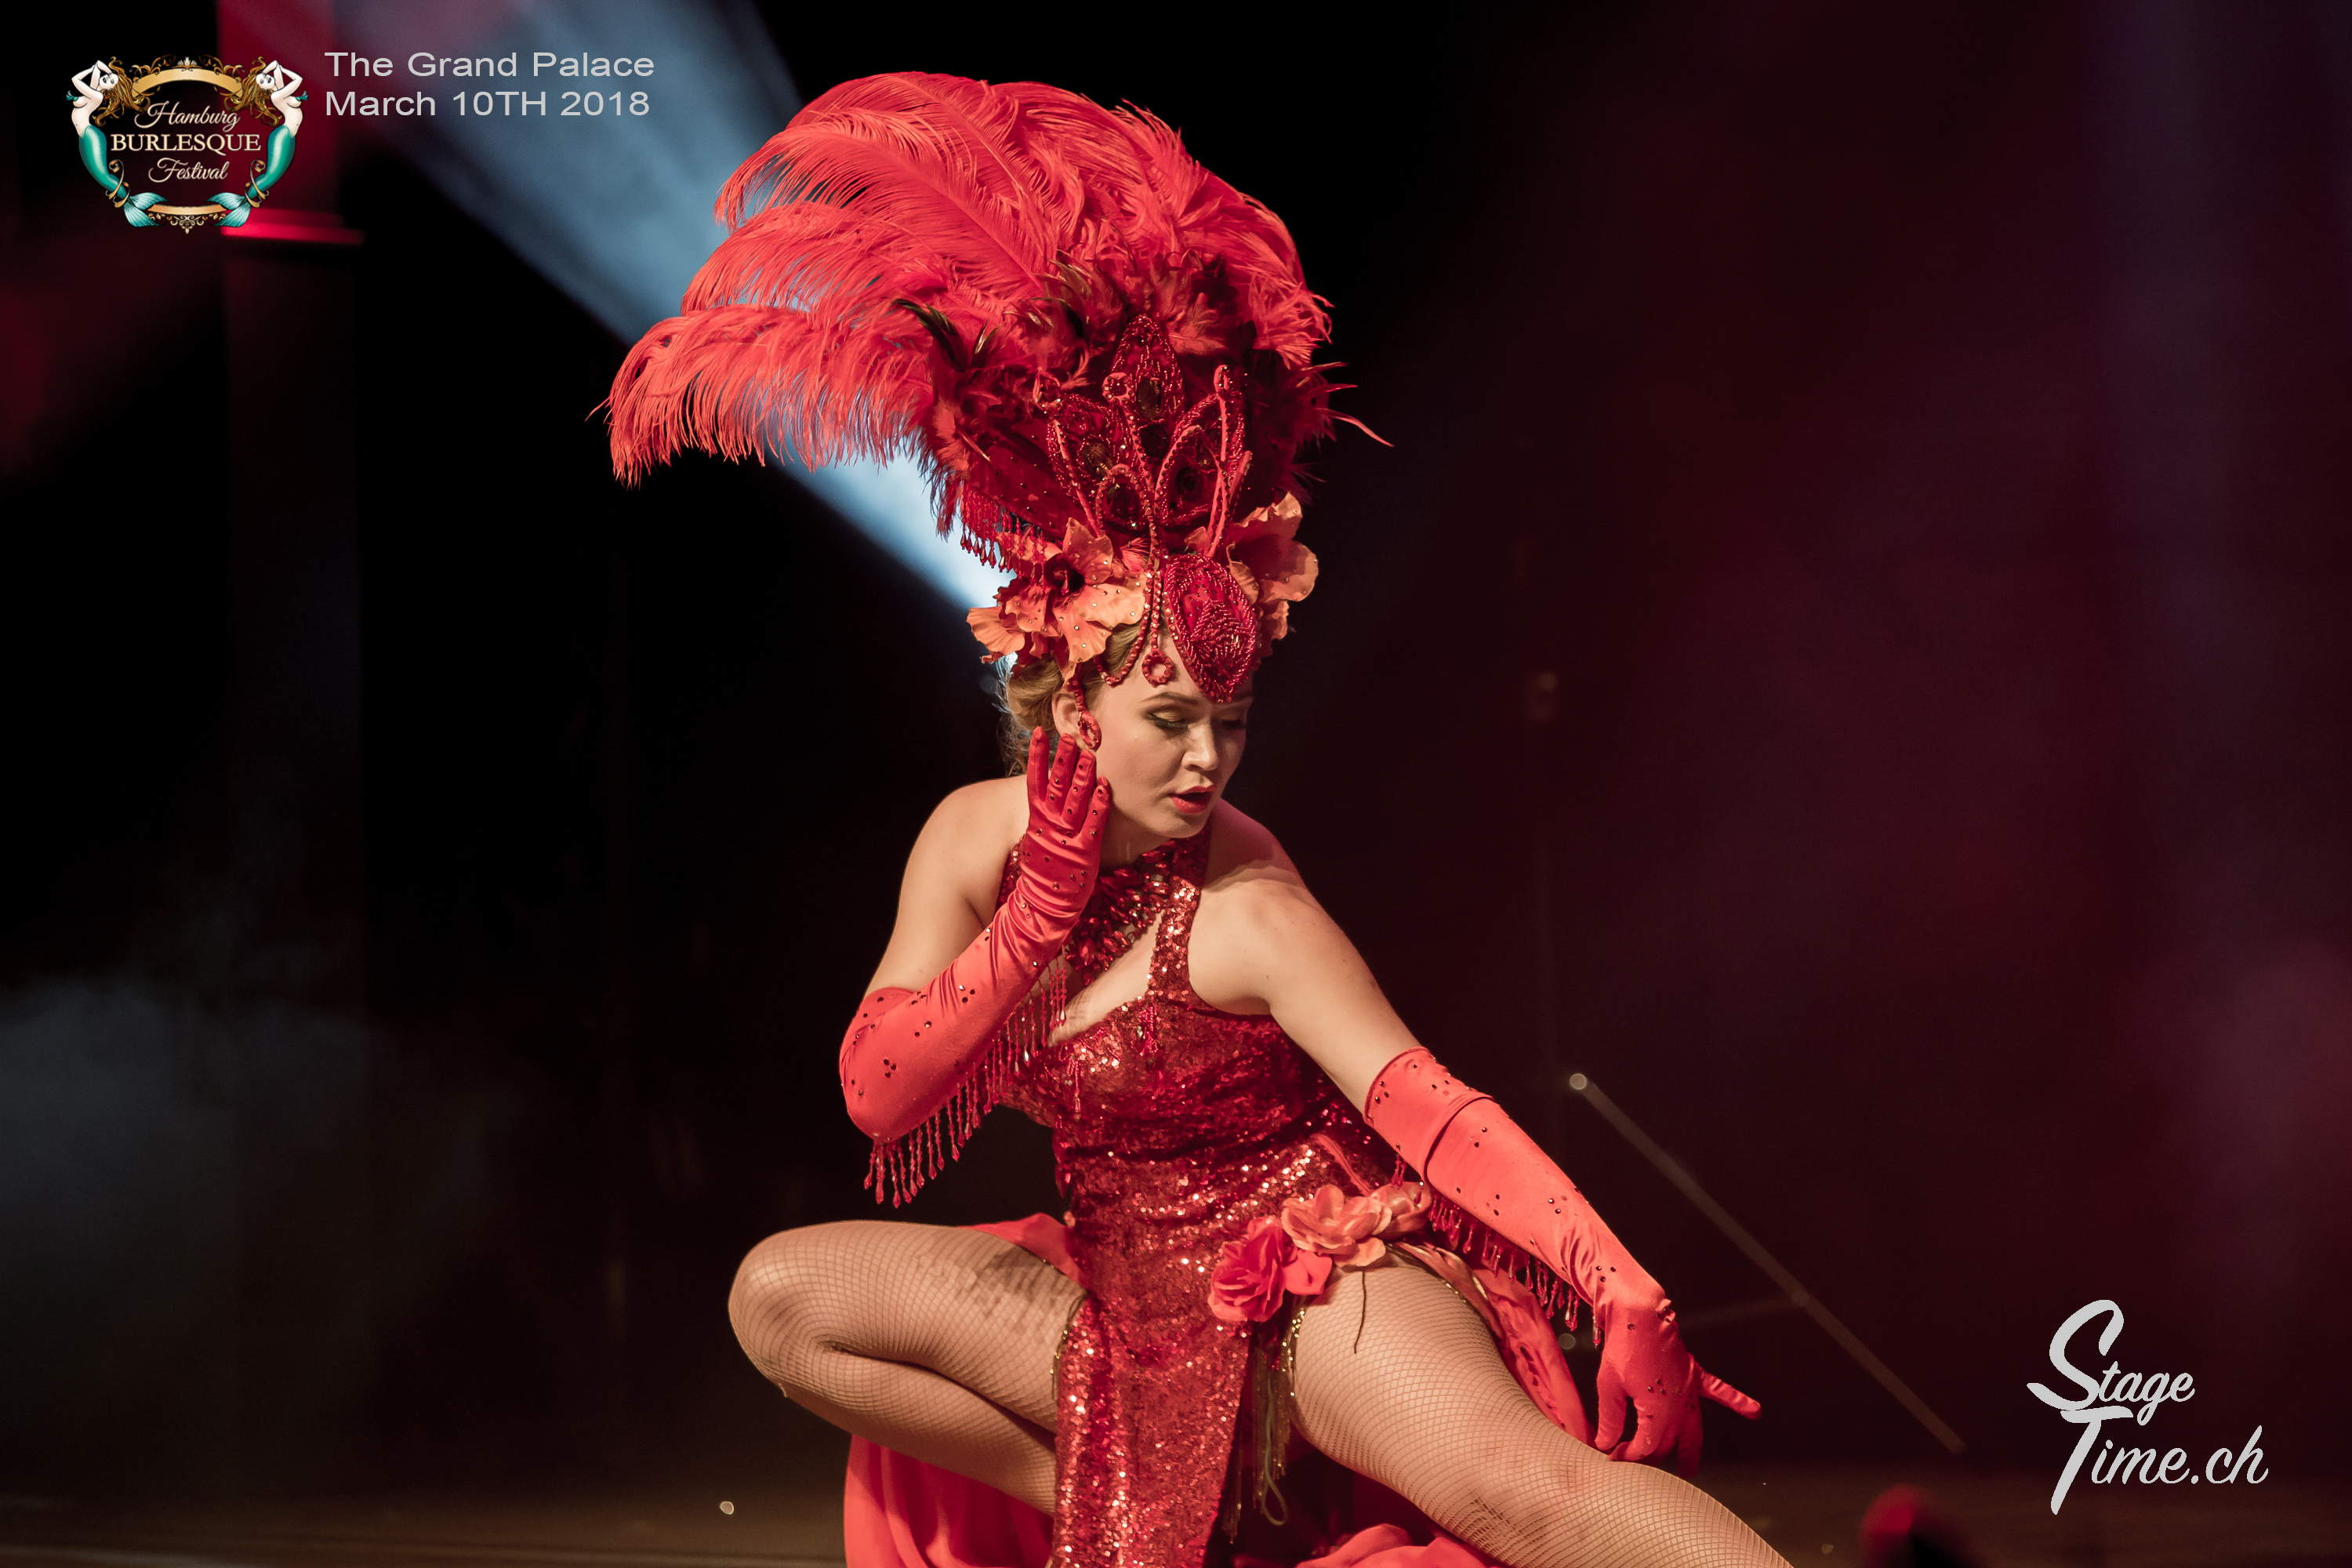 Hamburg_Burlesque_Festival_The_Grand_Palace__📷_Christoph_Gurtner_I_stagetime.ch-73